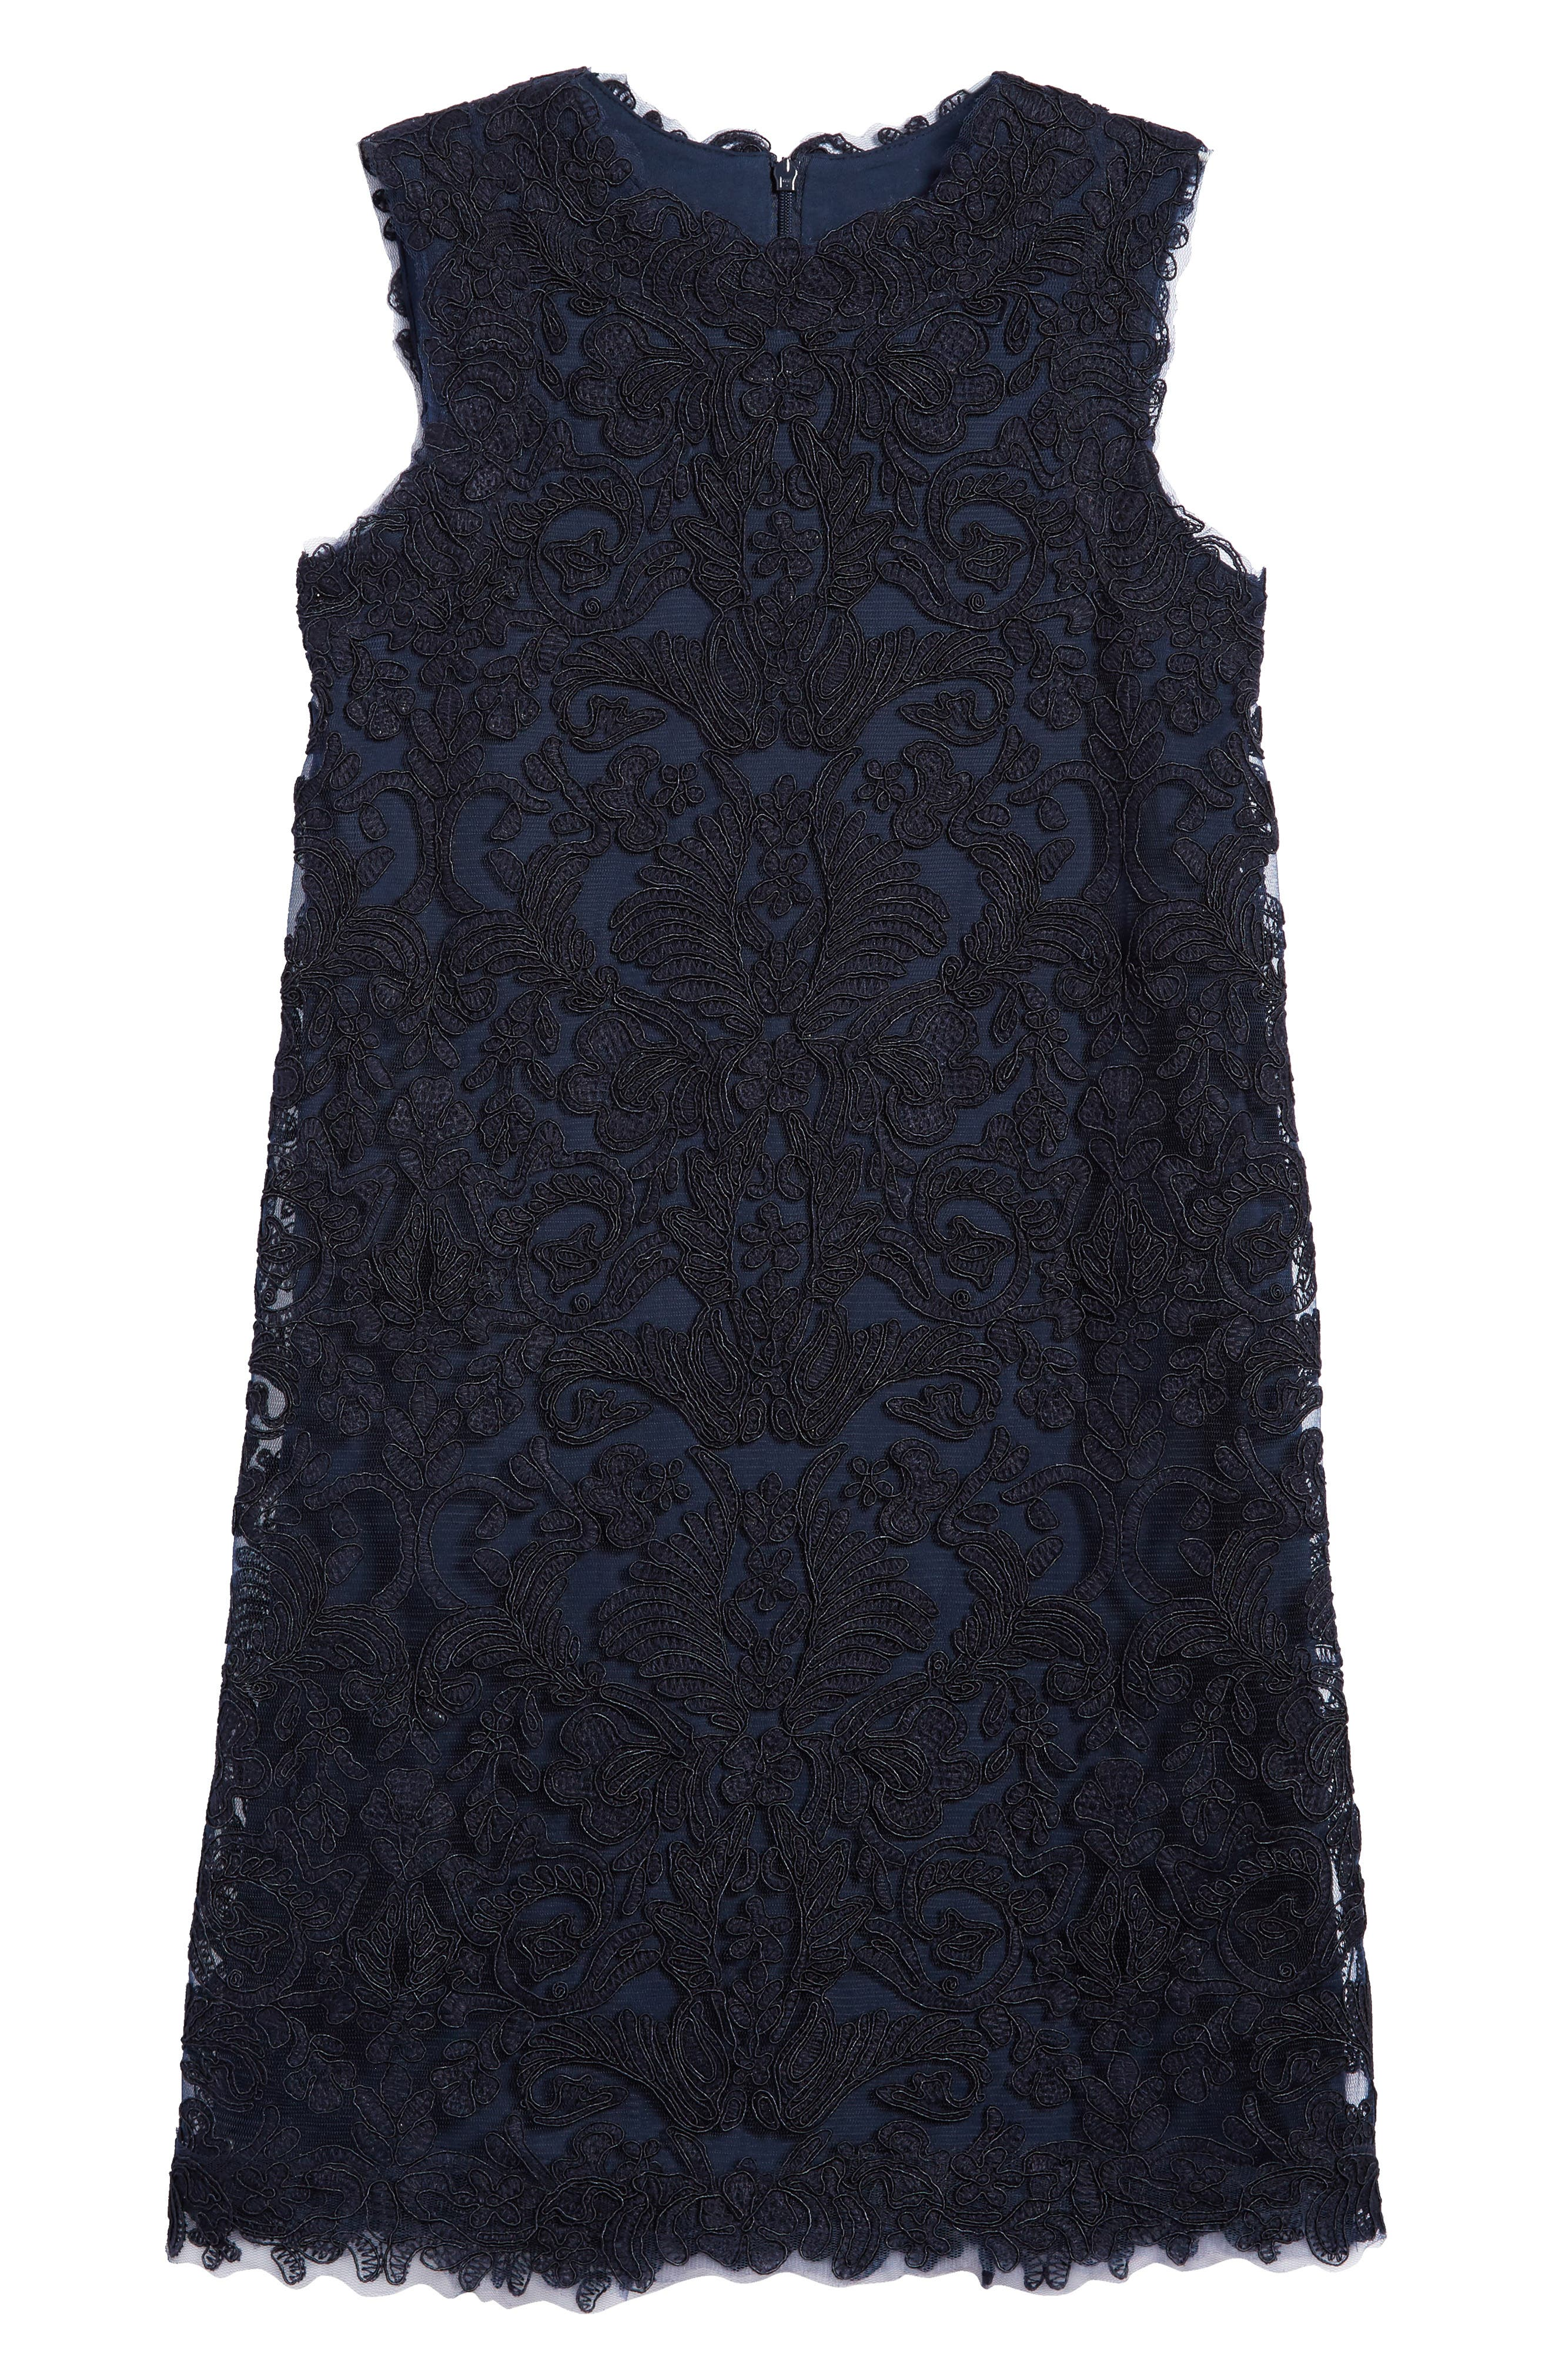 'Honeysuckle' Embroidered Tulle Dress,                         Main,                         color, 415